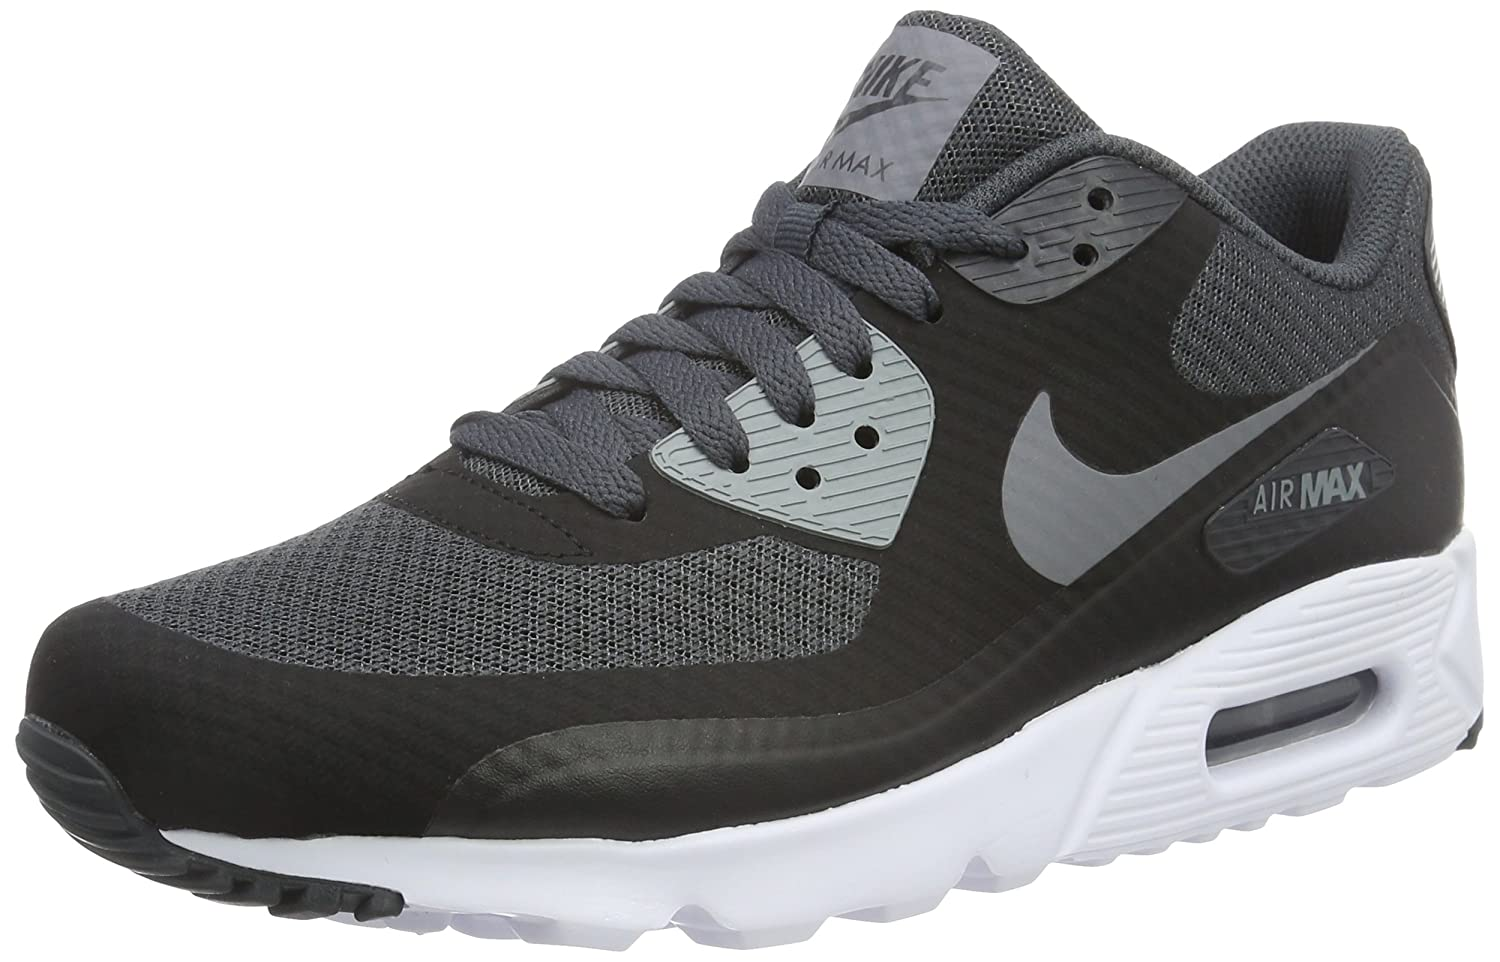 d1734d66e5 Amazon.com | NIKE Air Max 90 Ultra Essential Black/Cool  Grey-Anthracite-White (8 D(M) US, Black/Cool Grey-Anthracite-White) | Road  Running